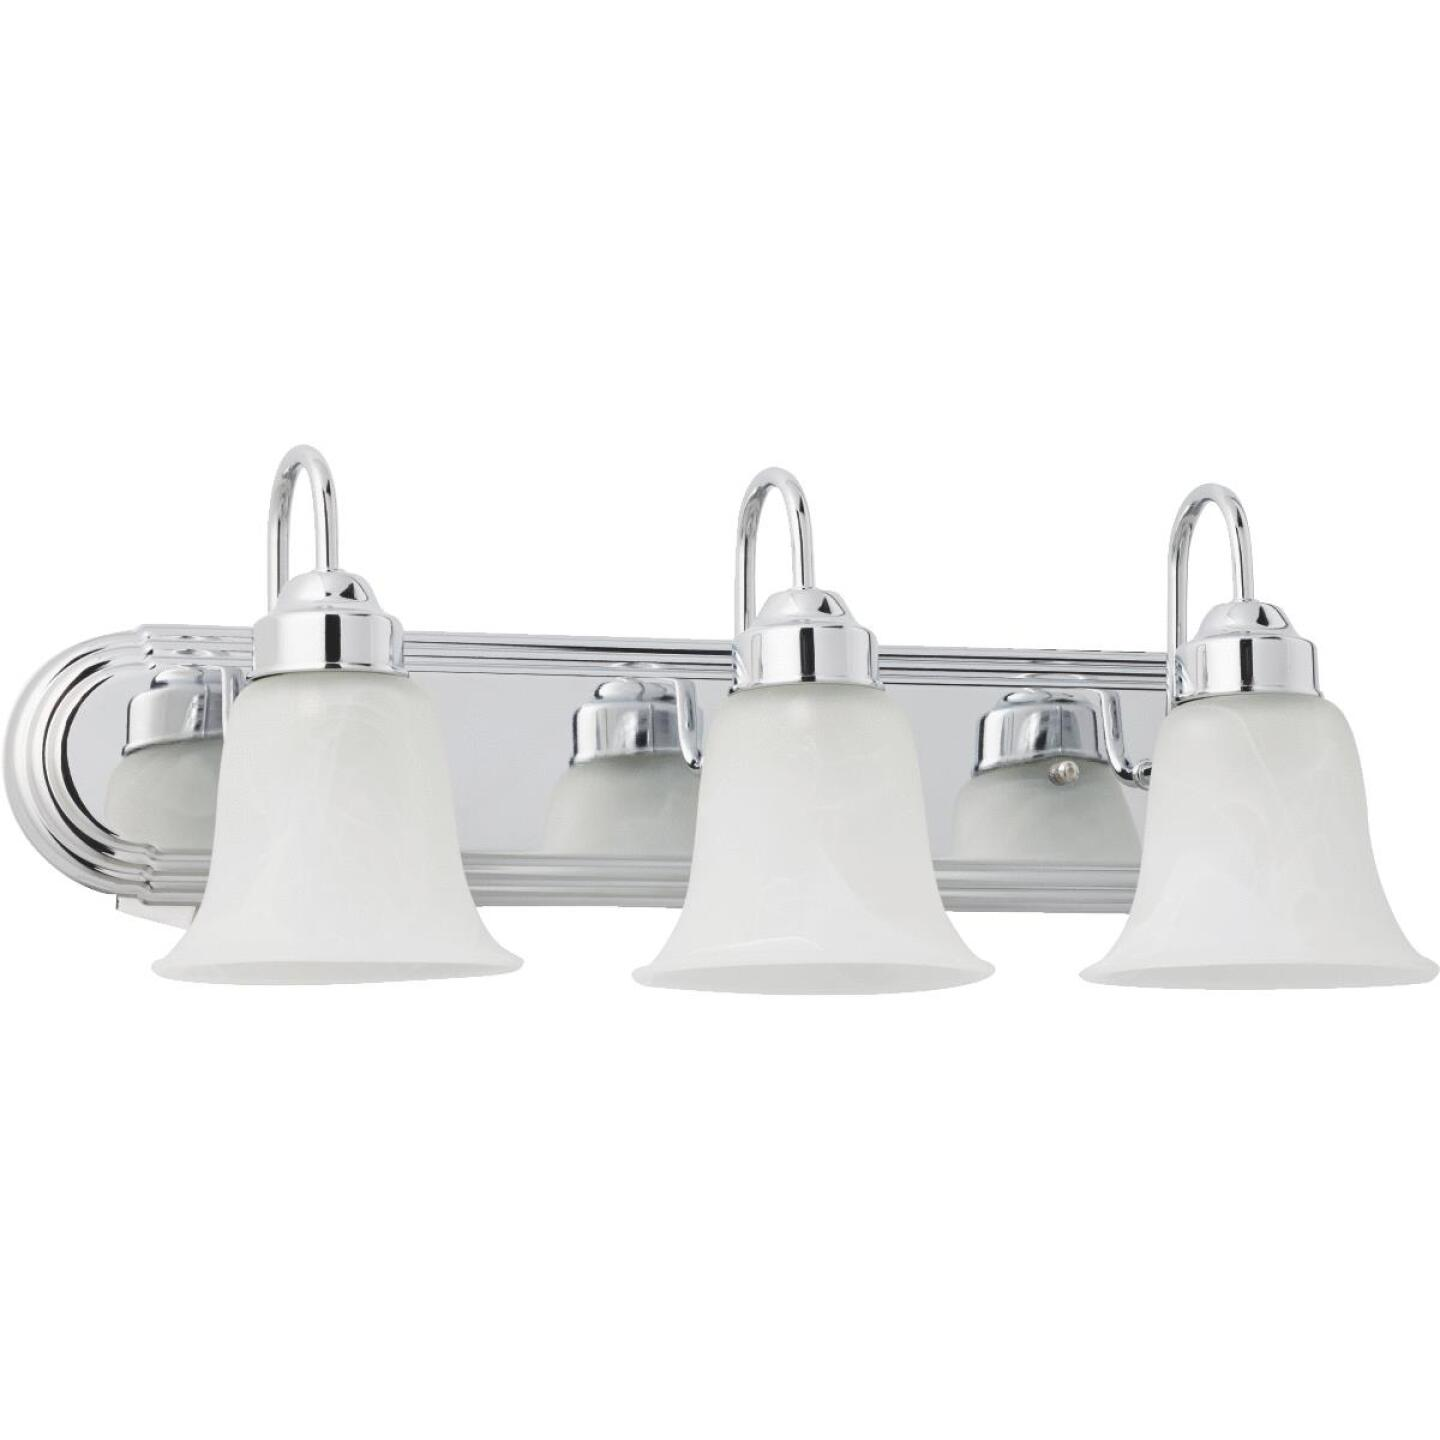 Home Impressions Julianna 3-Bulb Chrome Vanity Bath Light Bar Image 2